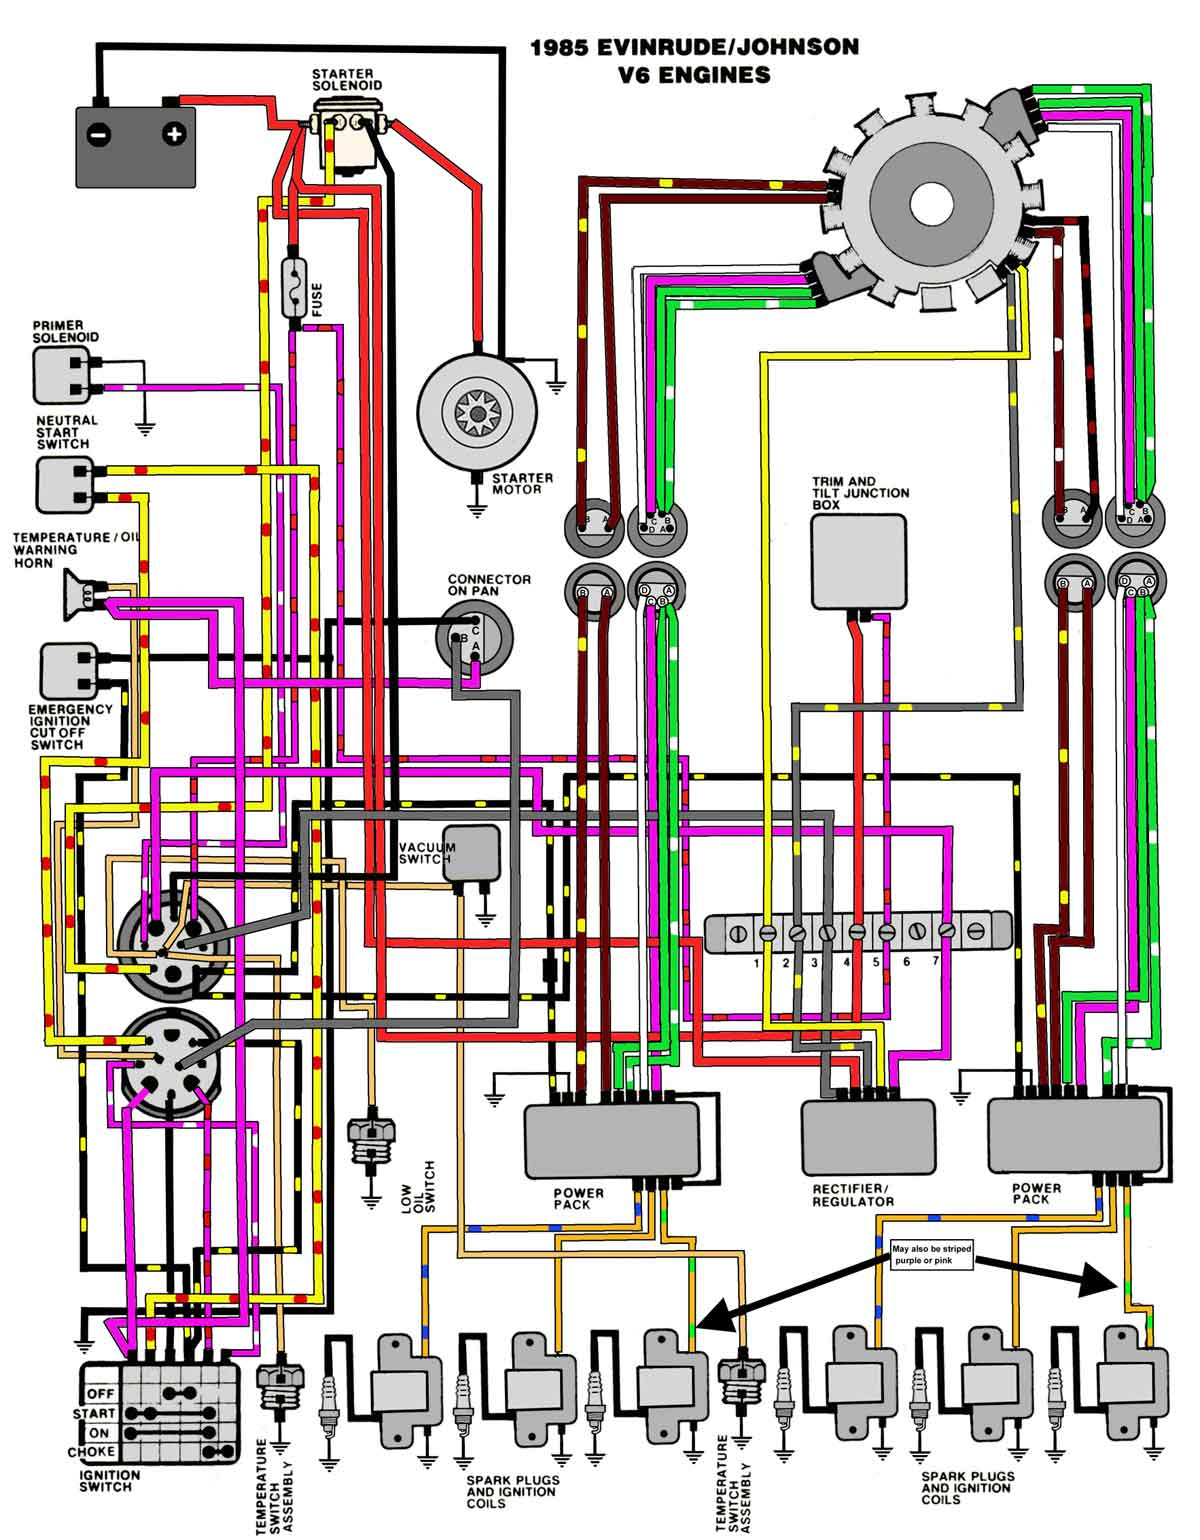 bayliner ignition wiring diagram schematic diagram Mercruiser Trim Wiring Diagram bayliner wiring diagram data wiring diagram schematic freightliner ignition wiring diagram 96 evinrude wiring diagram wiring